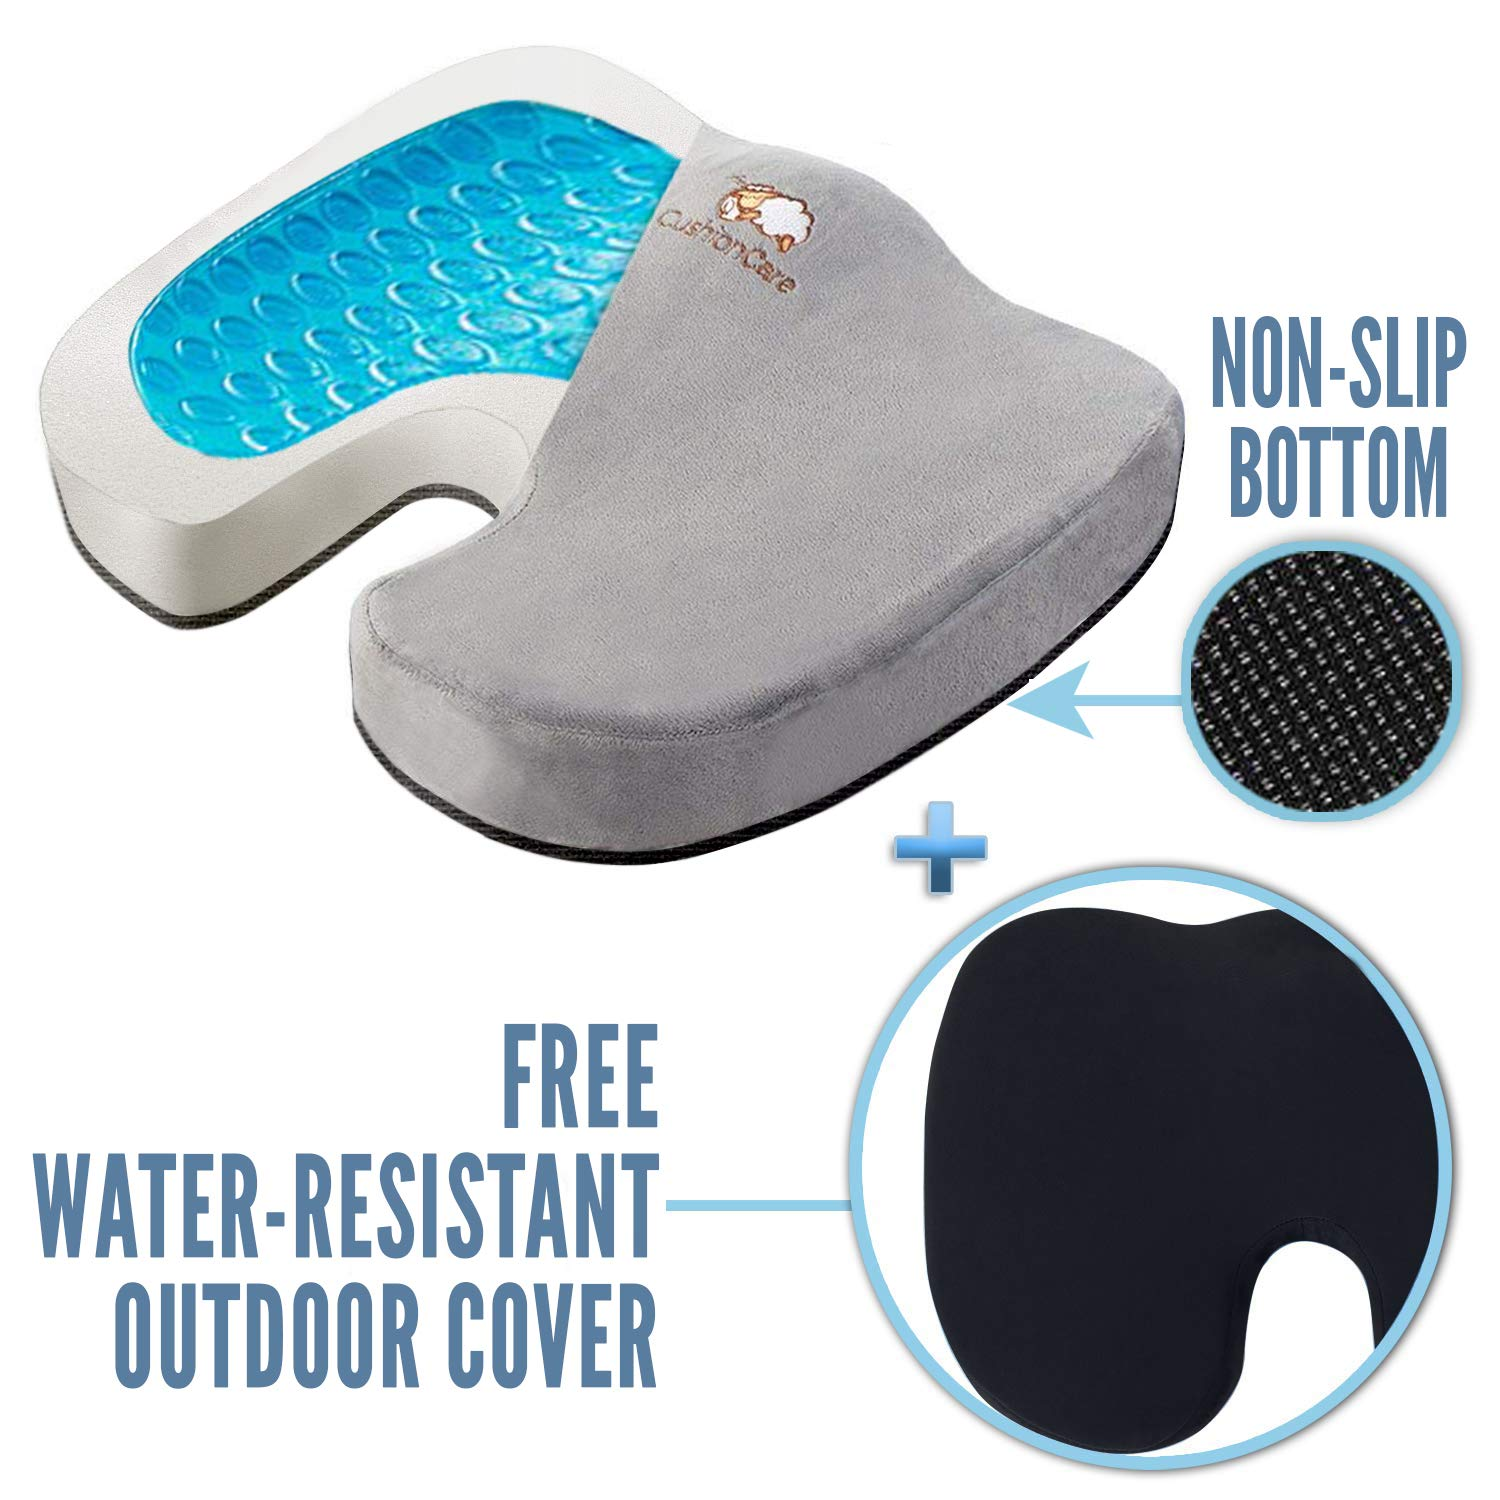 Memory Foam Seat Cushion - Cooling Gel + Outdoor Water-Resistant Cover - Orthopedic Pain Relief for Tailbone, Sciatica, Coccyx - Non-Slip Back, Hip Support for Office Chair, Car, Truck, Wheelchair